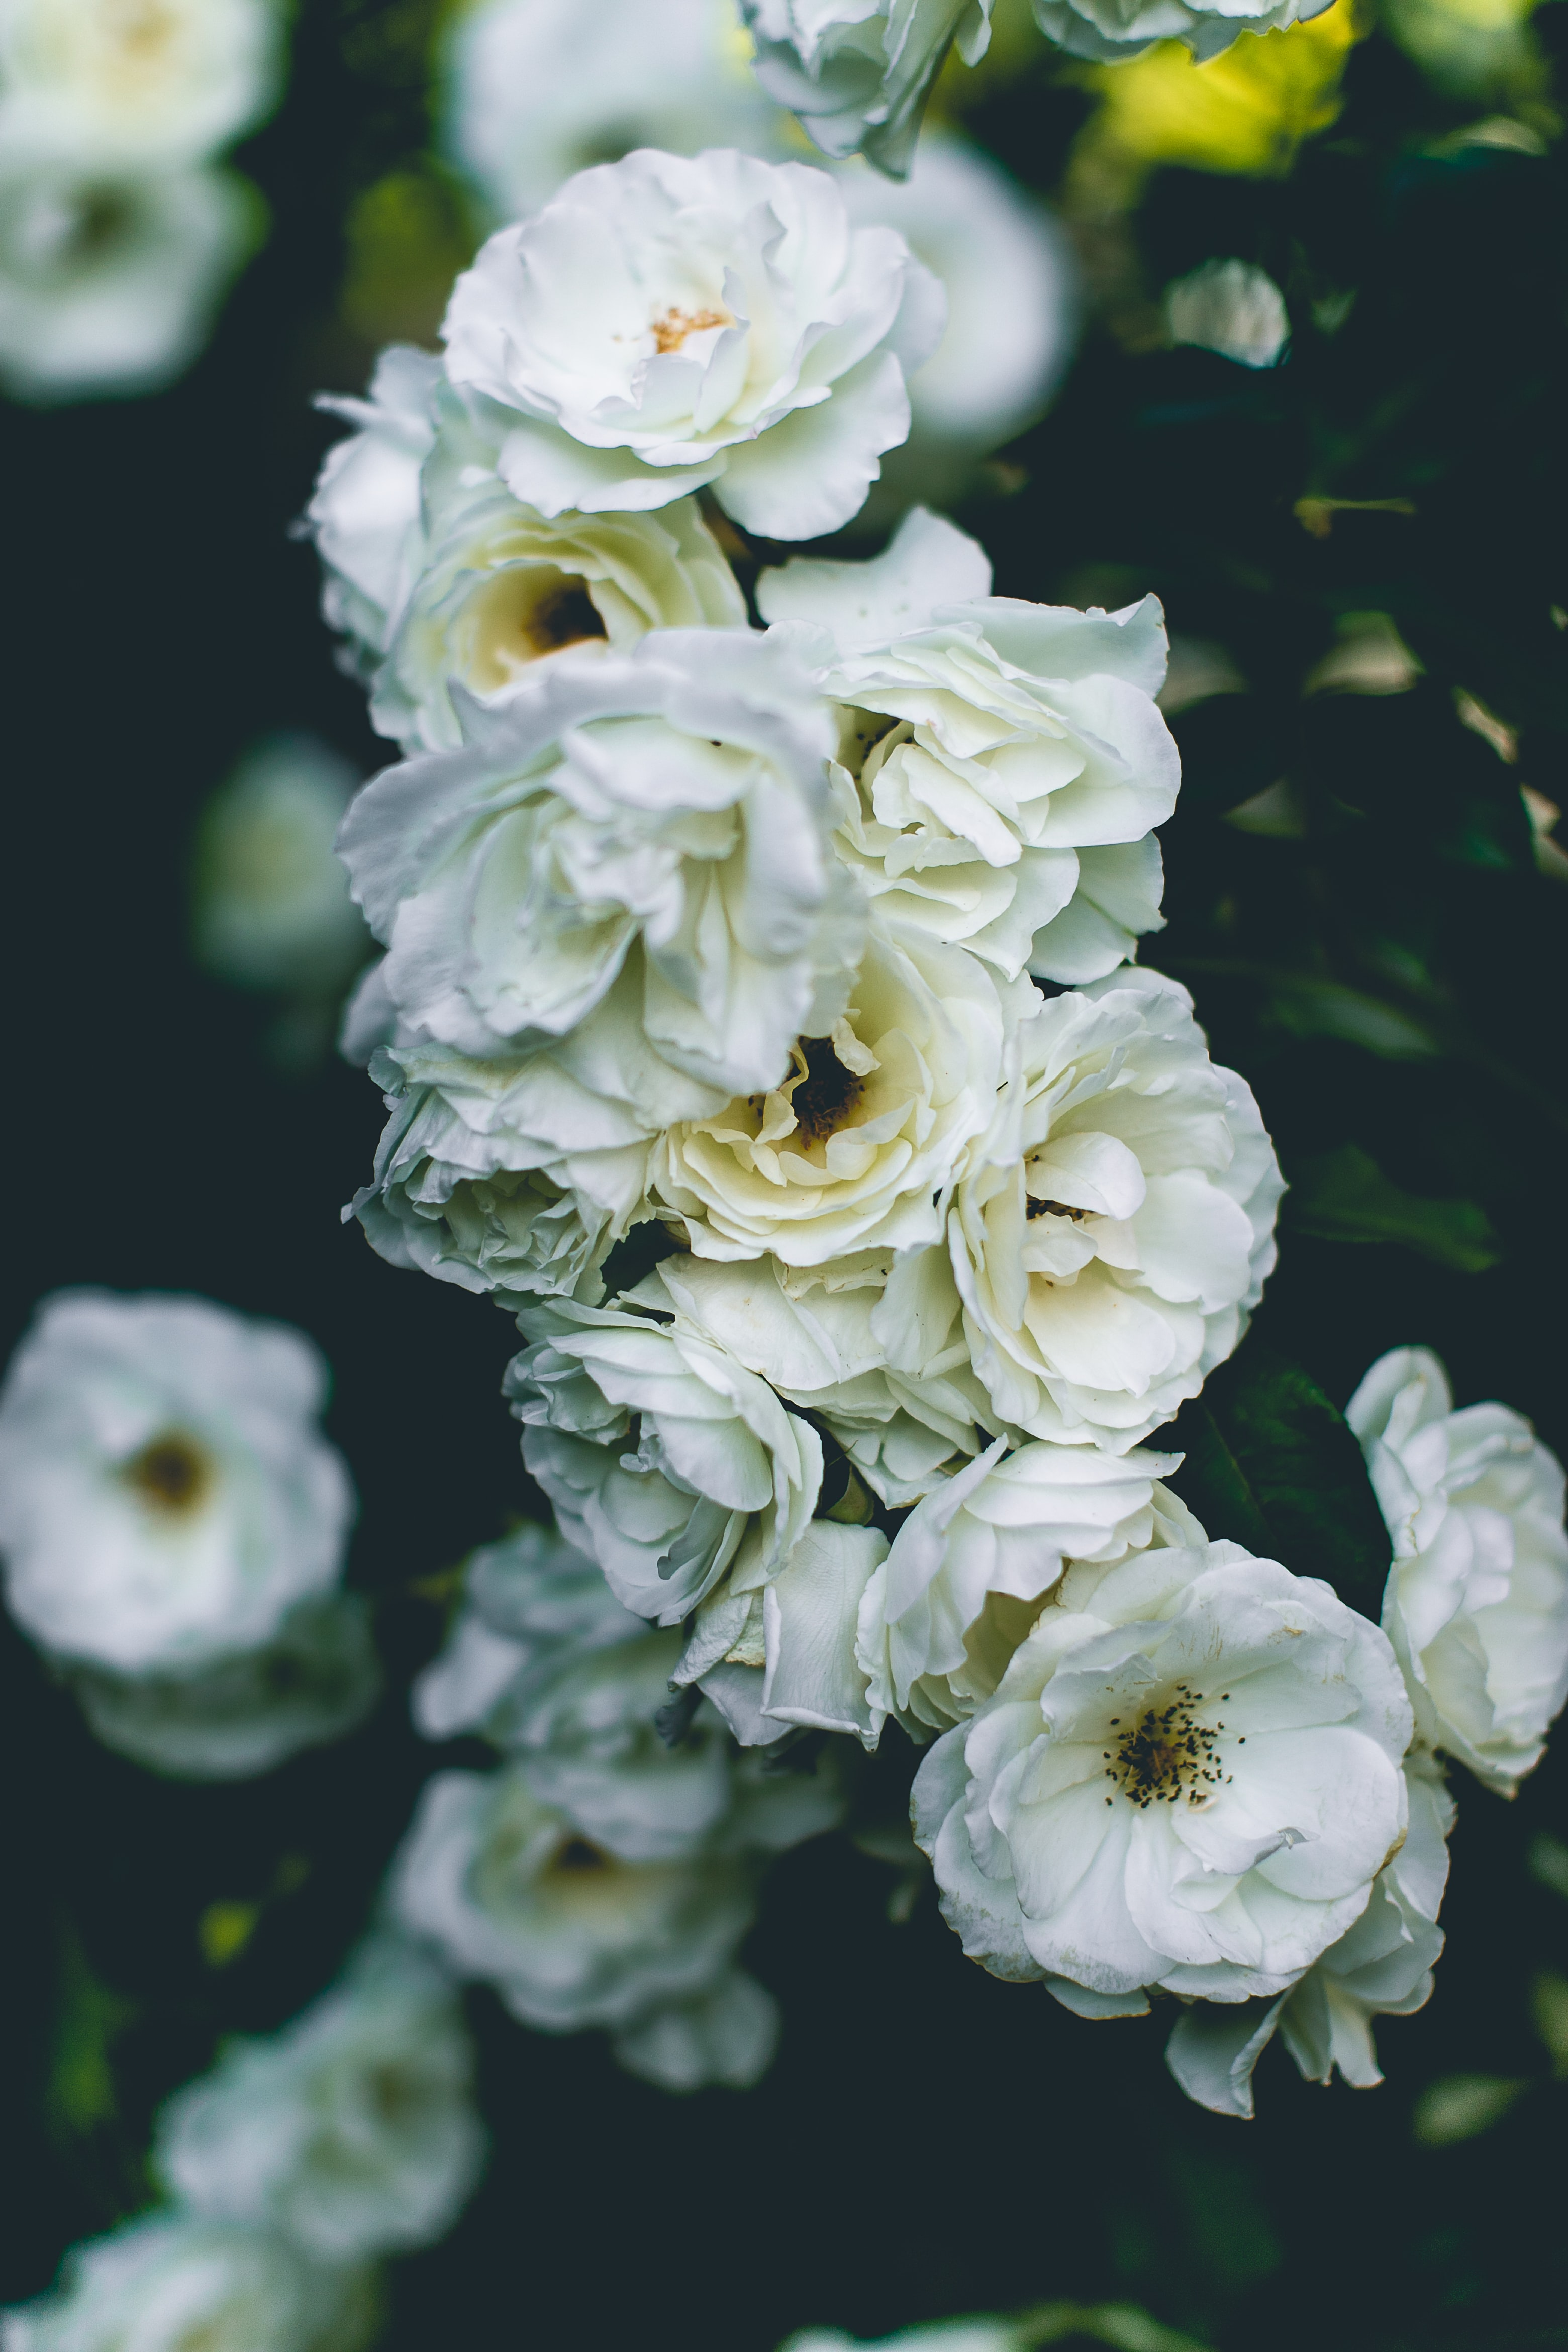 white petaled flower bloom close-up photography